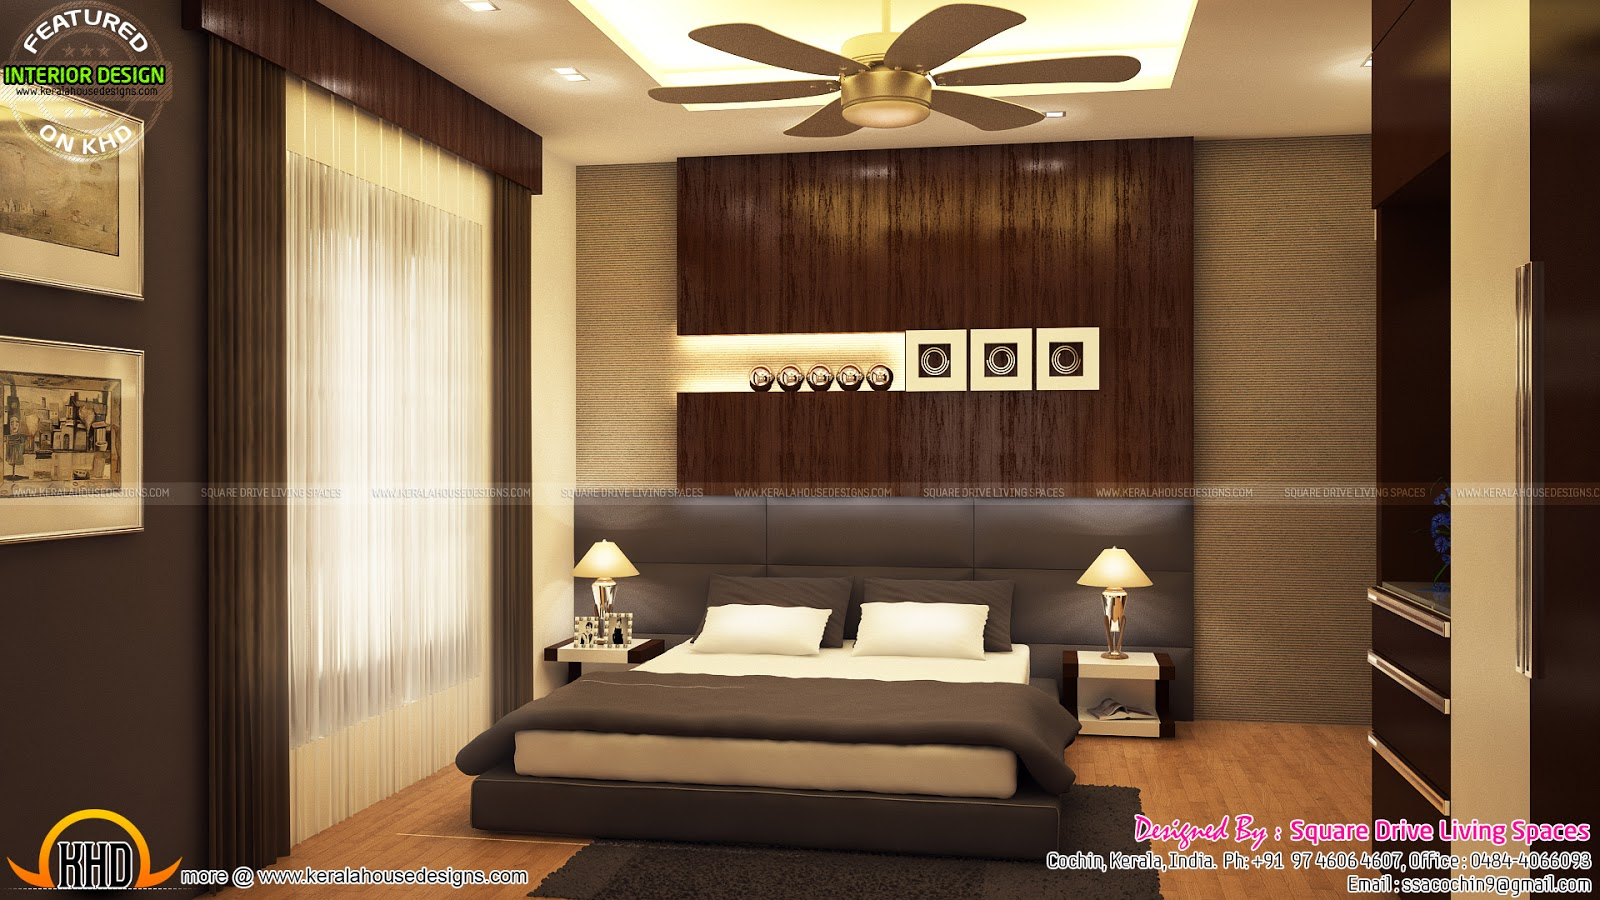 Interior designs of master bedroom living kitchen and for Designs of master bedroom